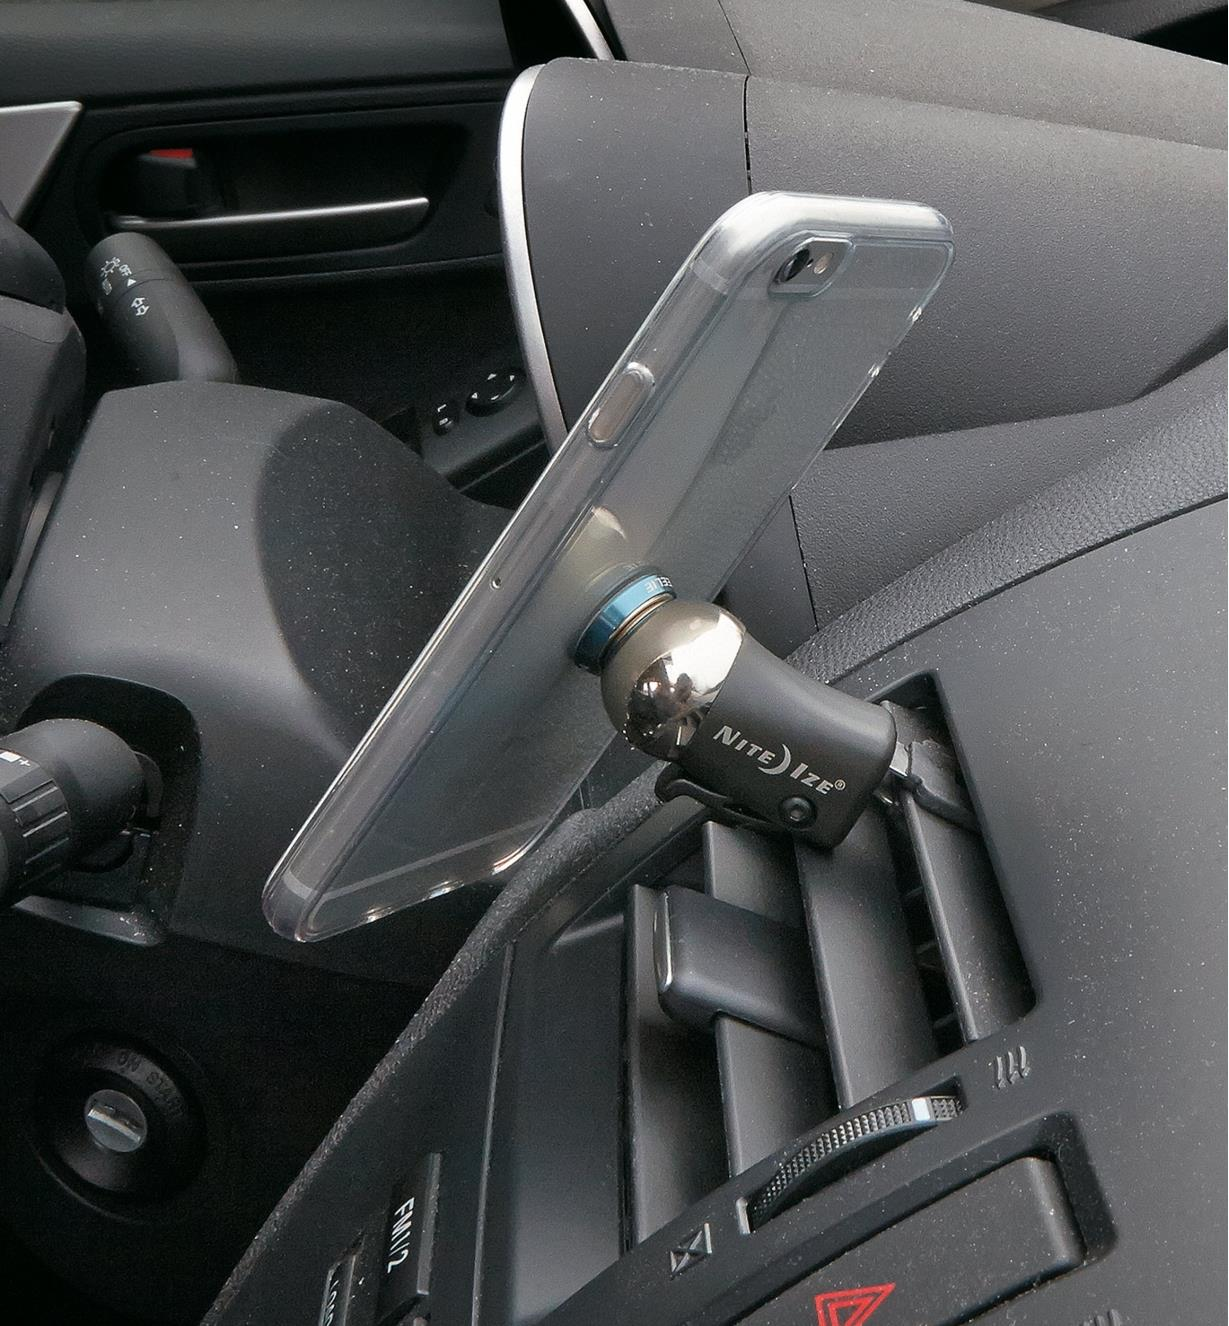 Steelie Mobile Device Vent Mount attached to a car vent, holding a cell phone